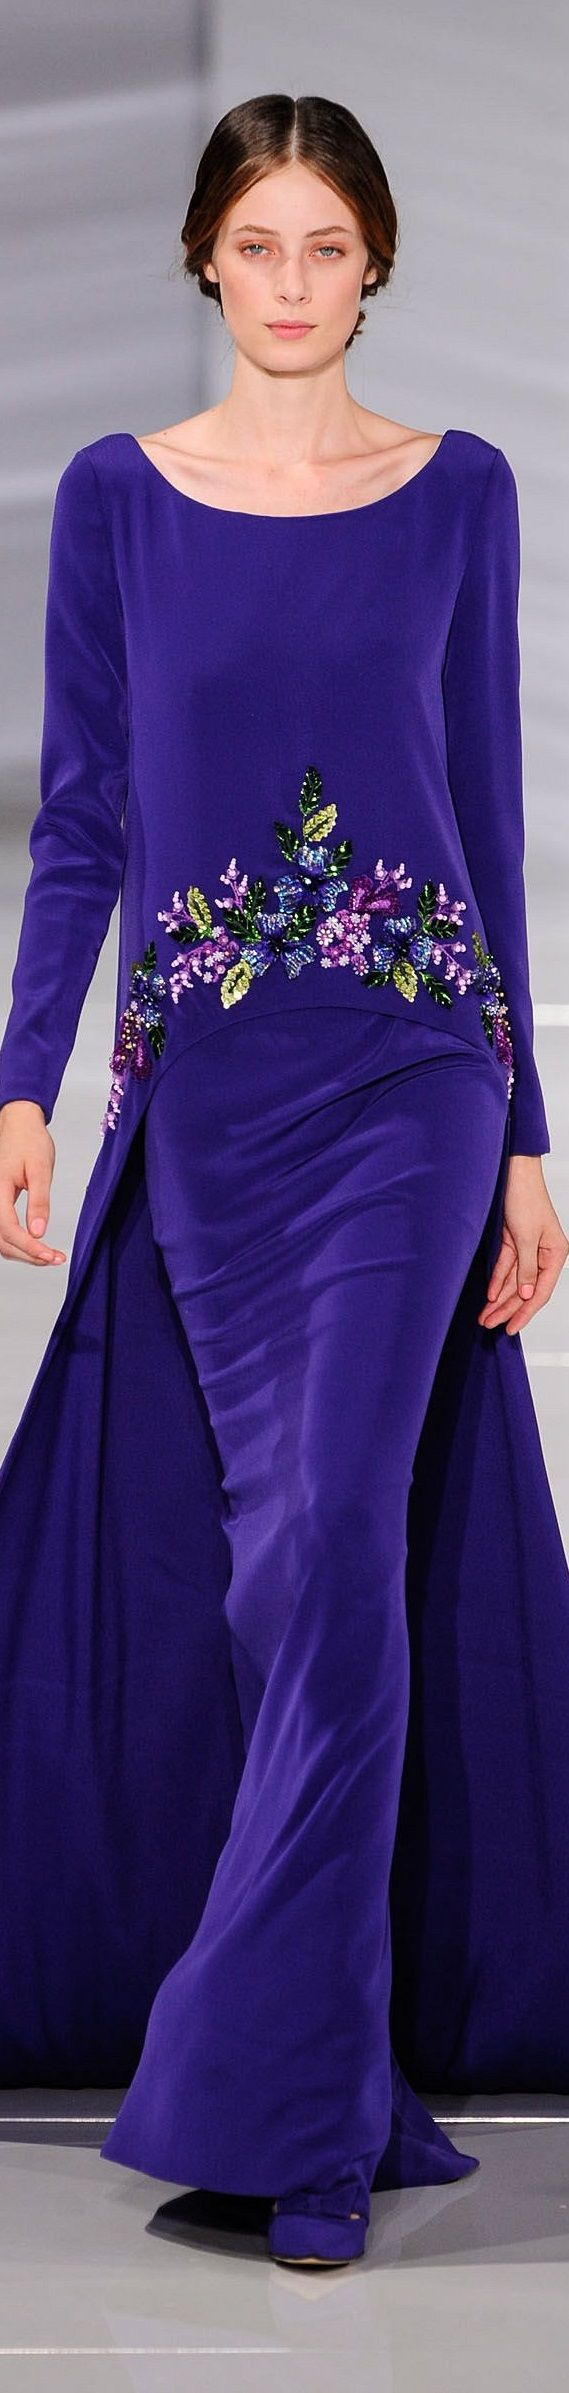 Georges Hobeika ~ Haute Couture Violet Velvet Floral Gown, Fall 2015-16...would love it in a different color scheme